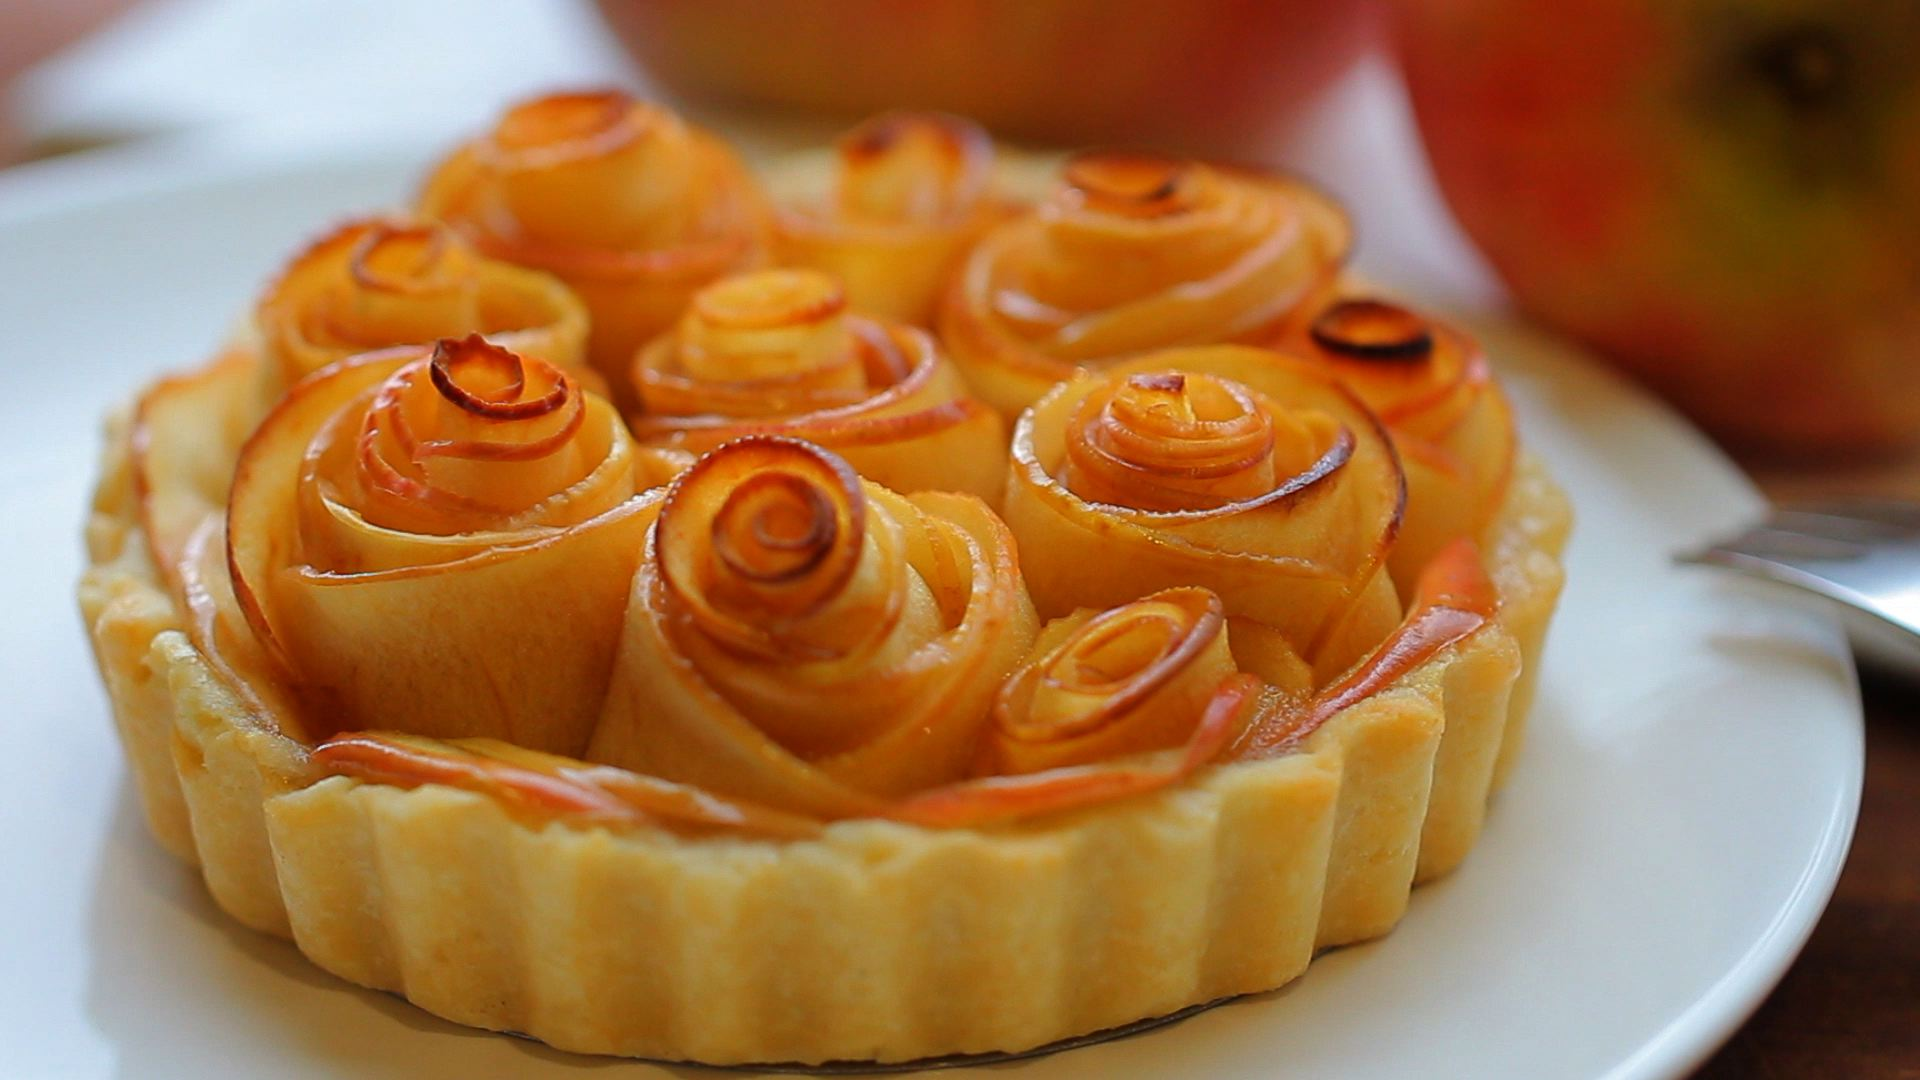 Rose apple tart for mother's day | Buona Pappa